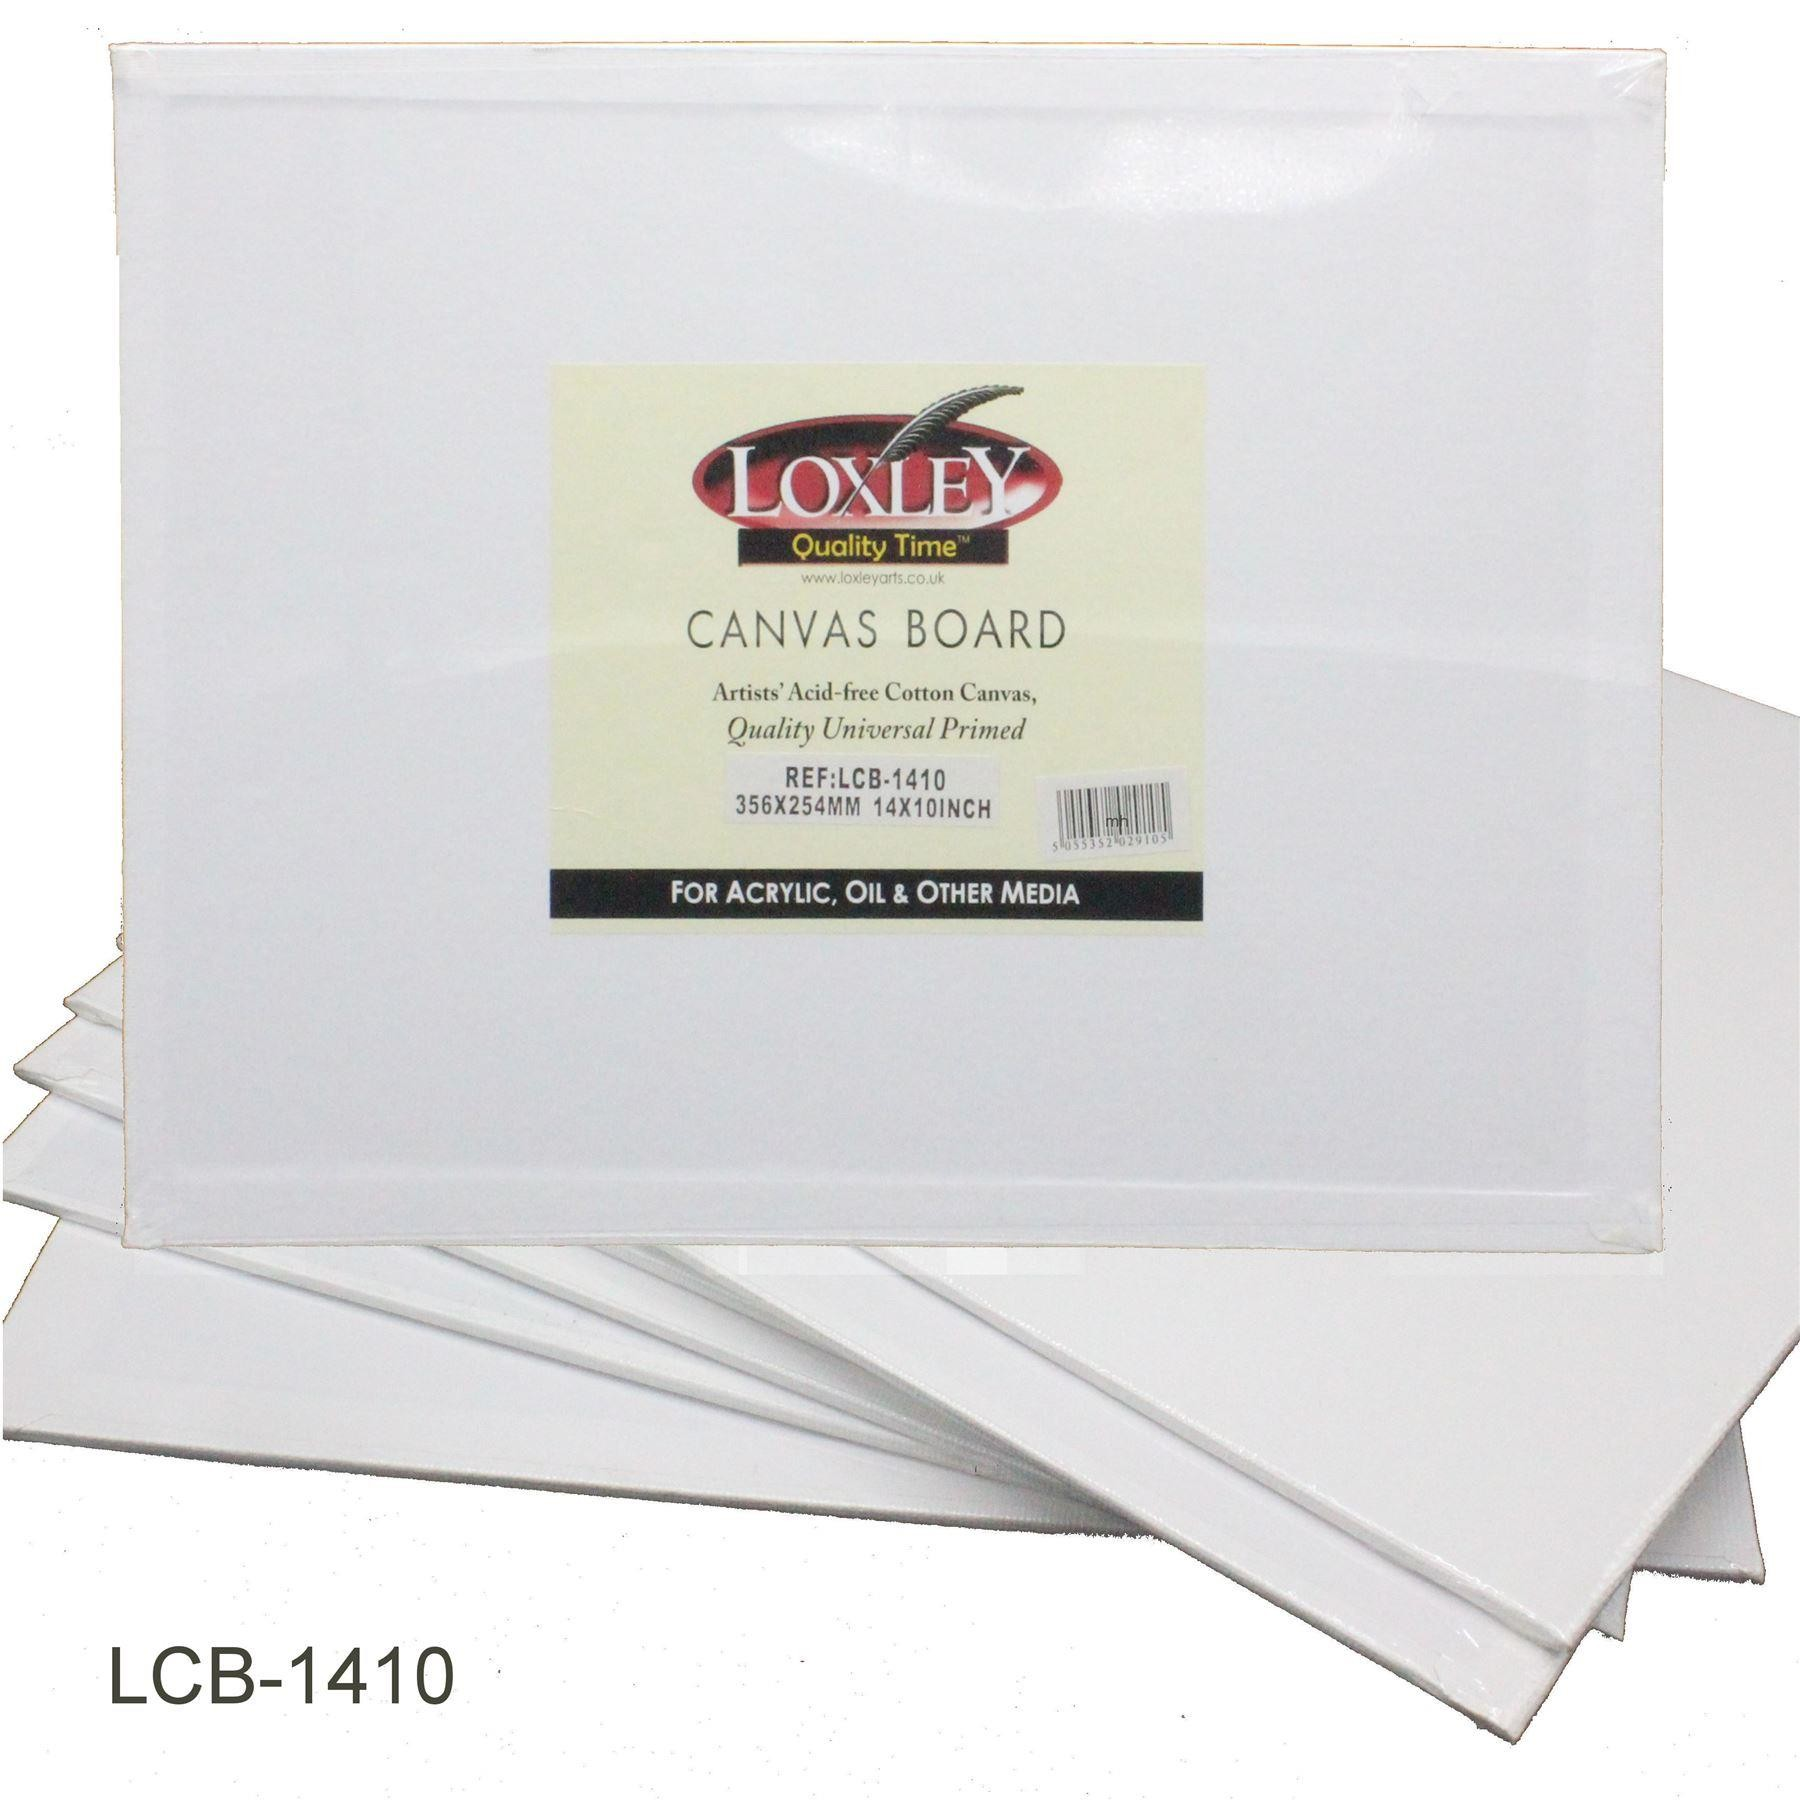 Loxley Quality Double Primed Acrylic Canvas Board - 14 x 10""